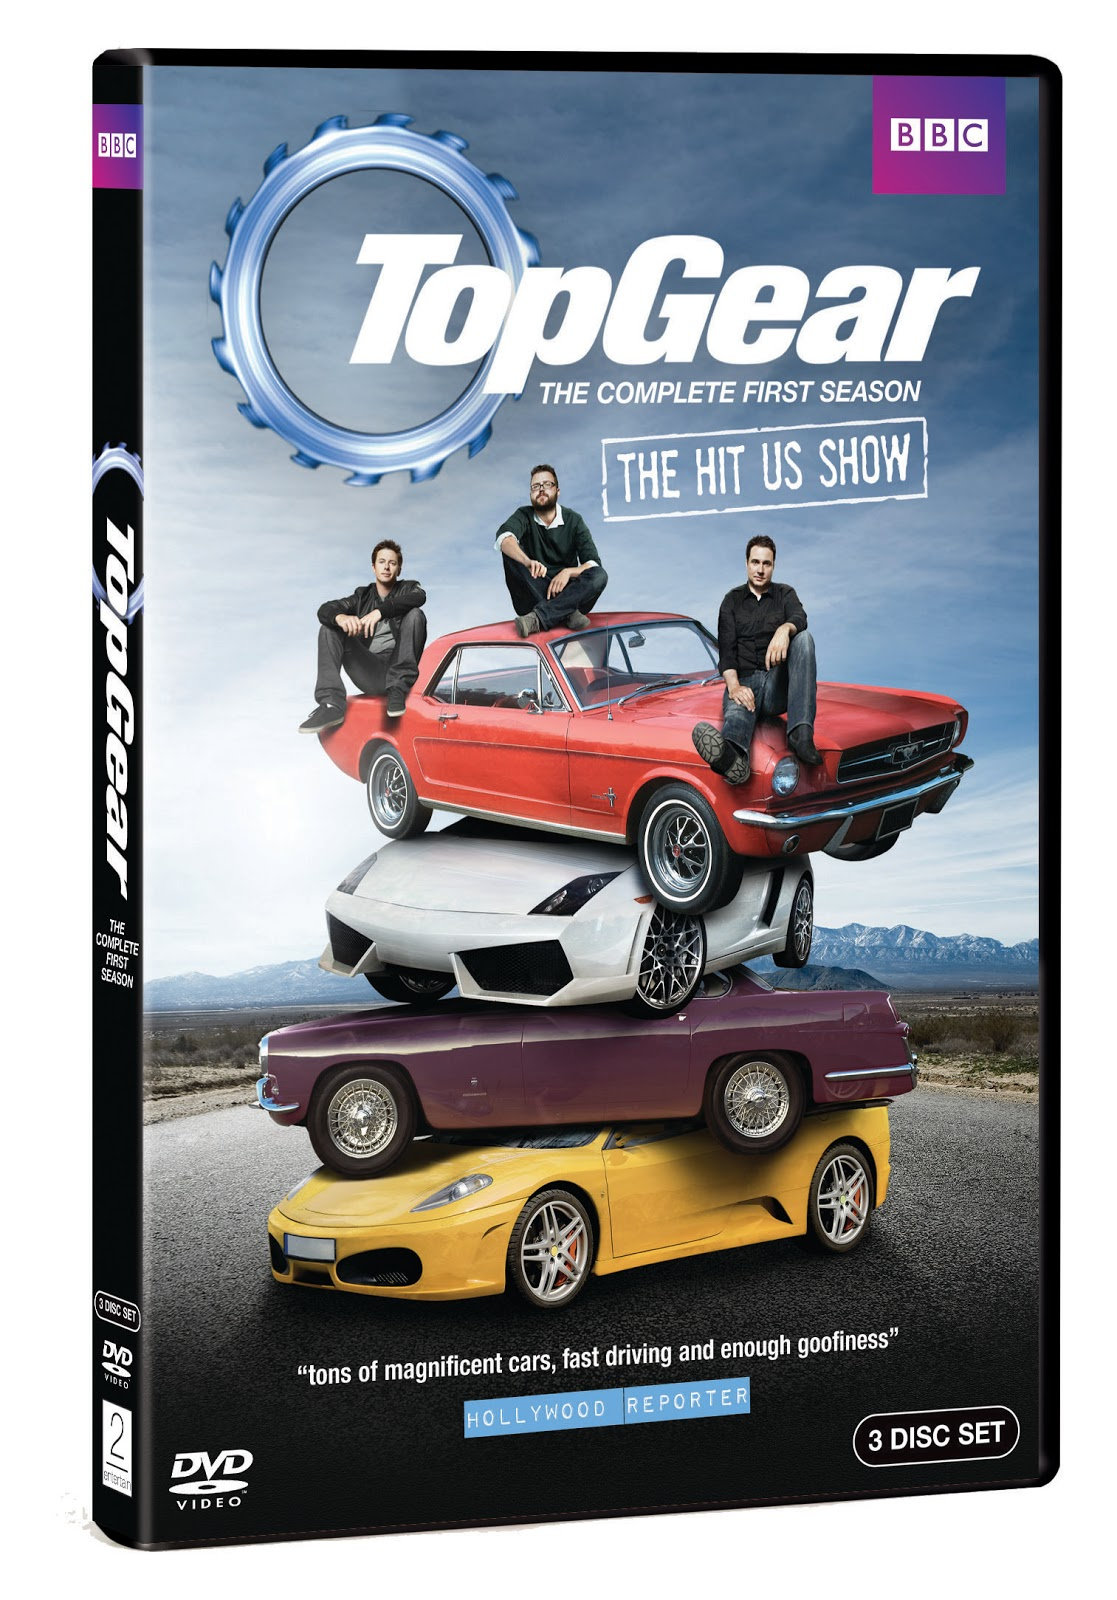 Top Gear: The Complete First Season Giveaway! ~ AngloAddict